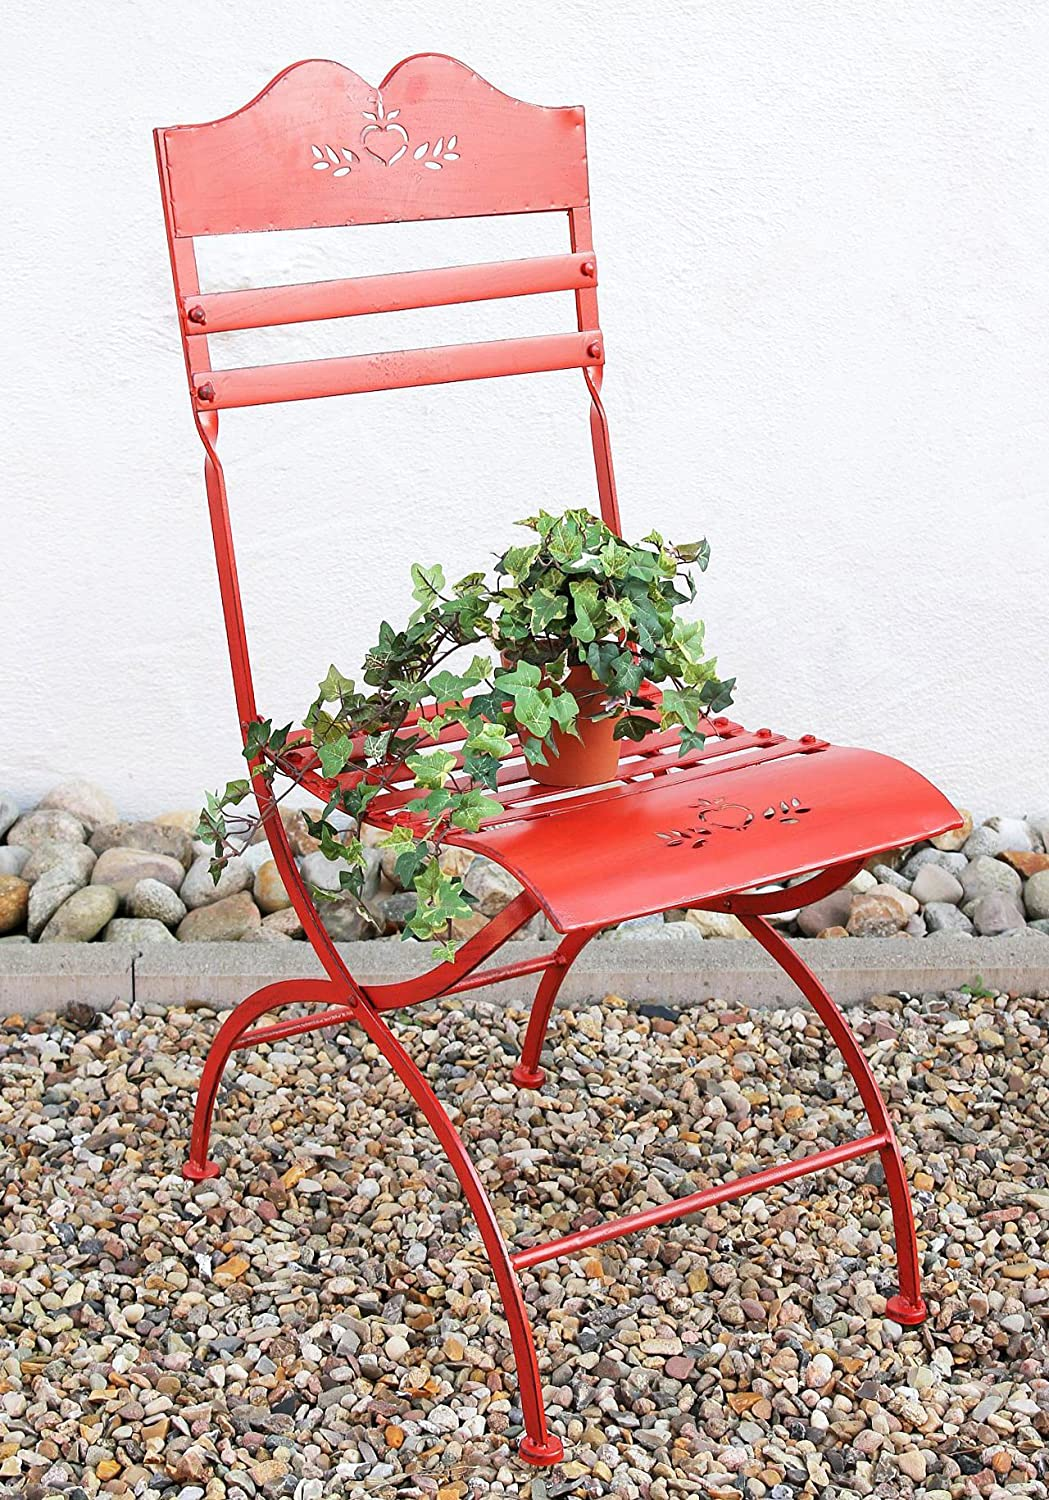 ChairPassion 18621 Garden chair made from metal red Flower bench Stool